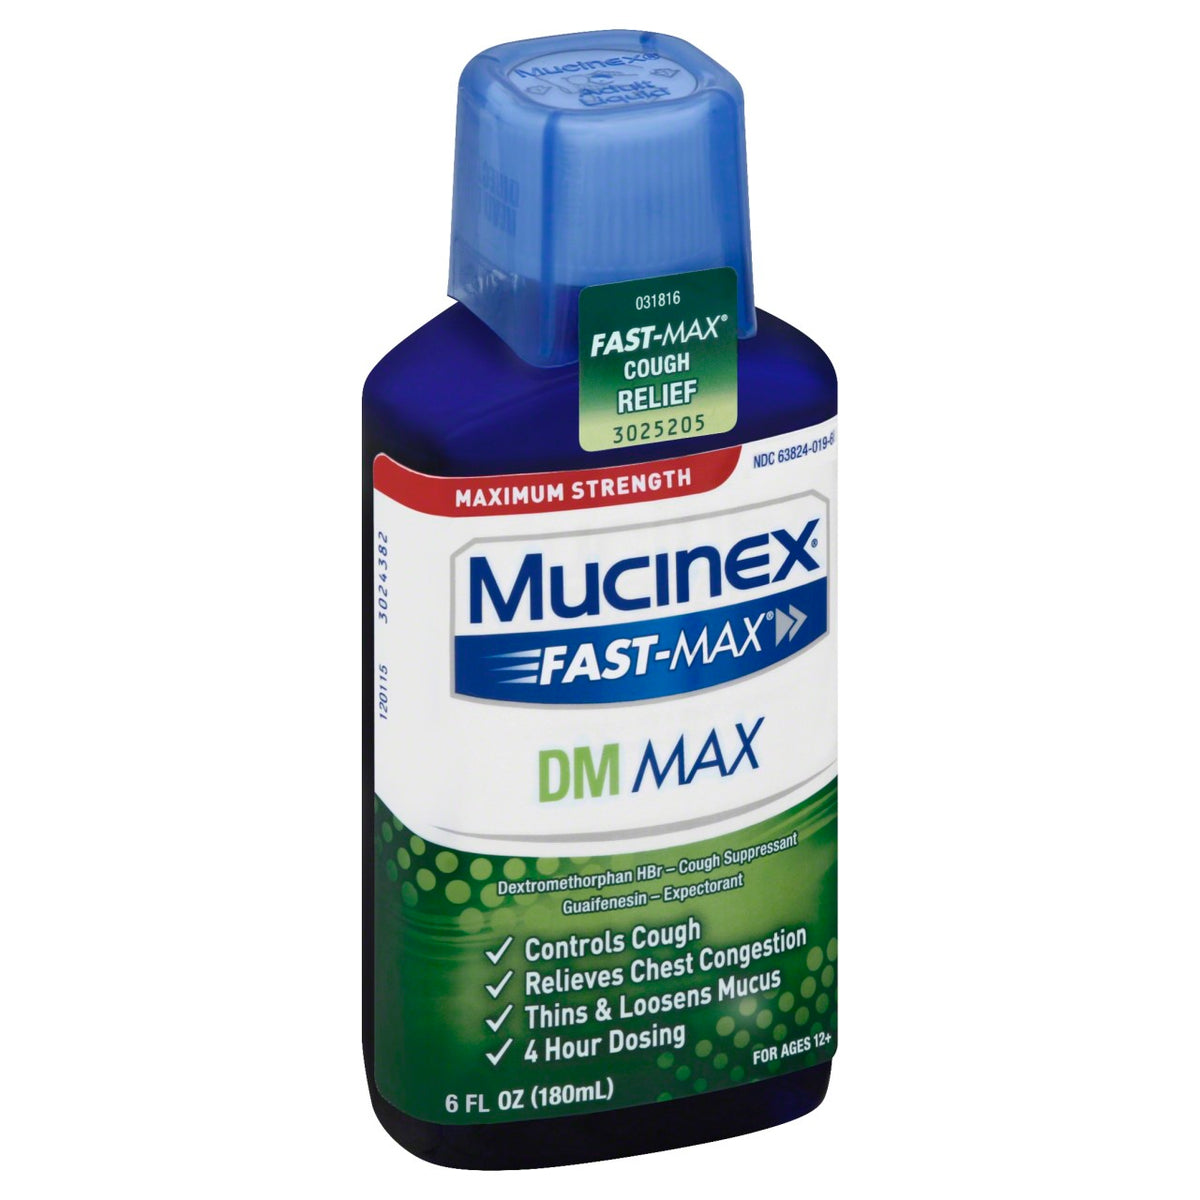 Mucinex Fast-Max DM, Max Strength, Cough Relief Liquid, 6